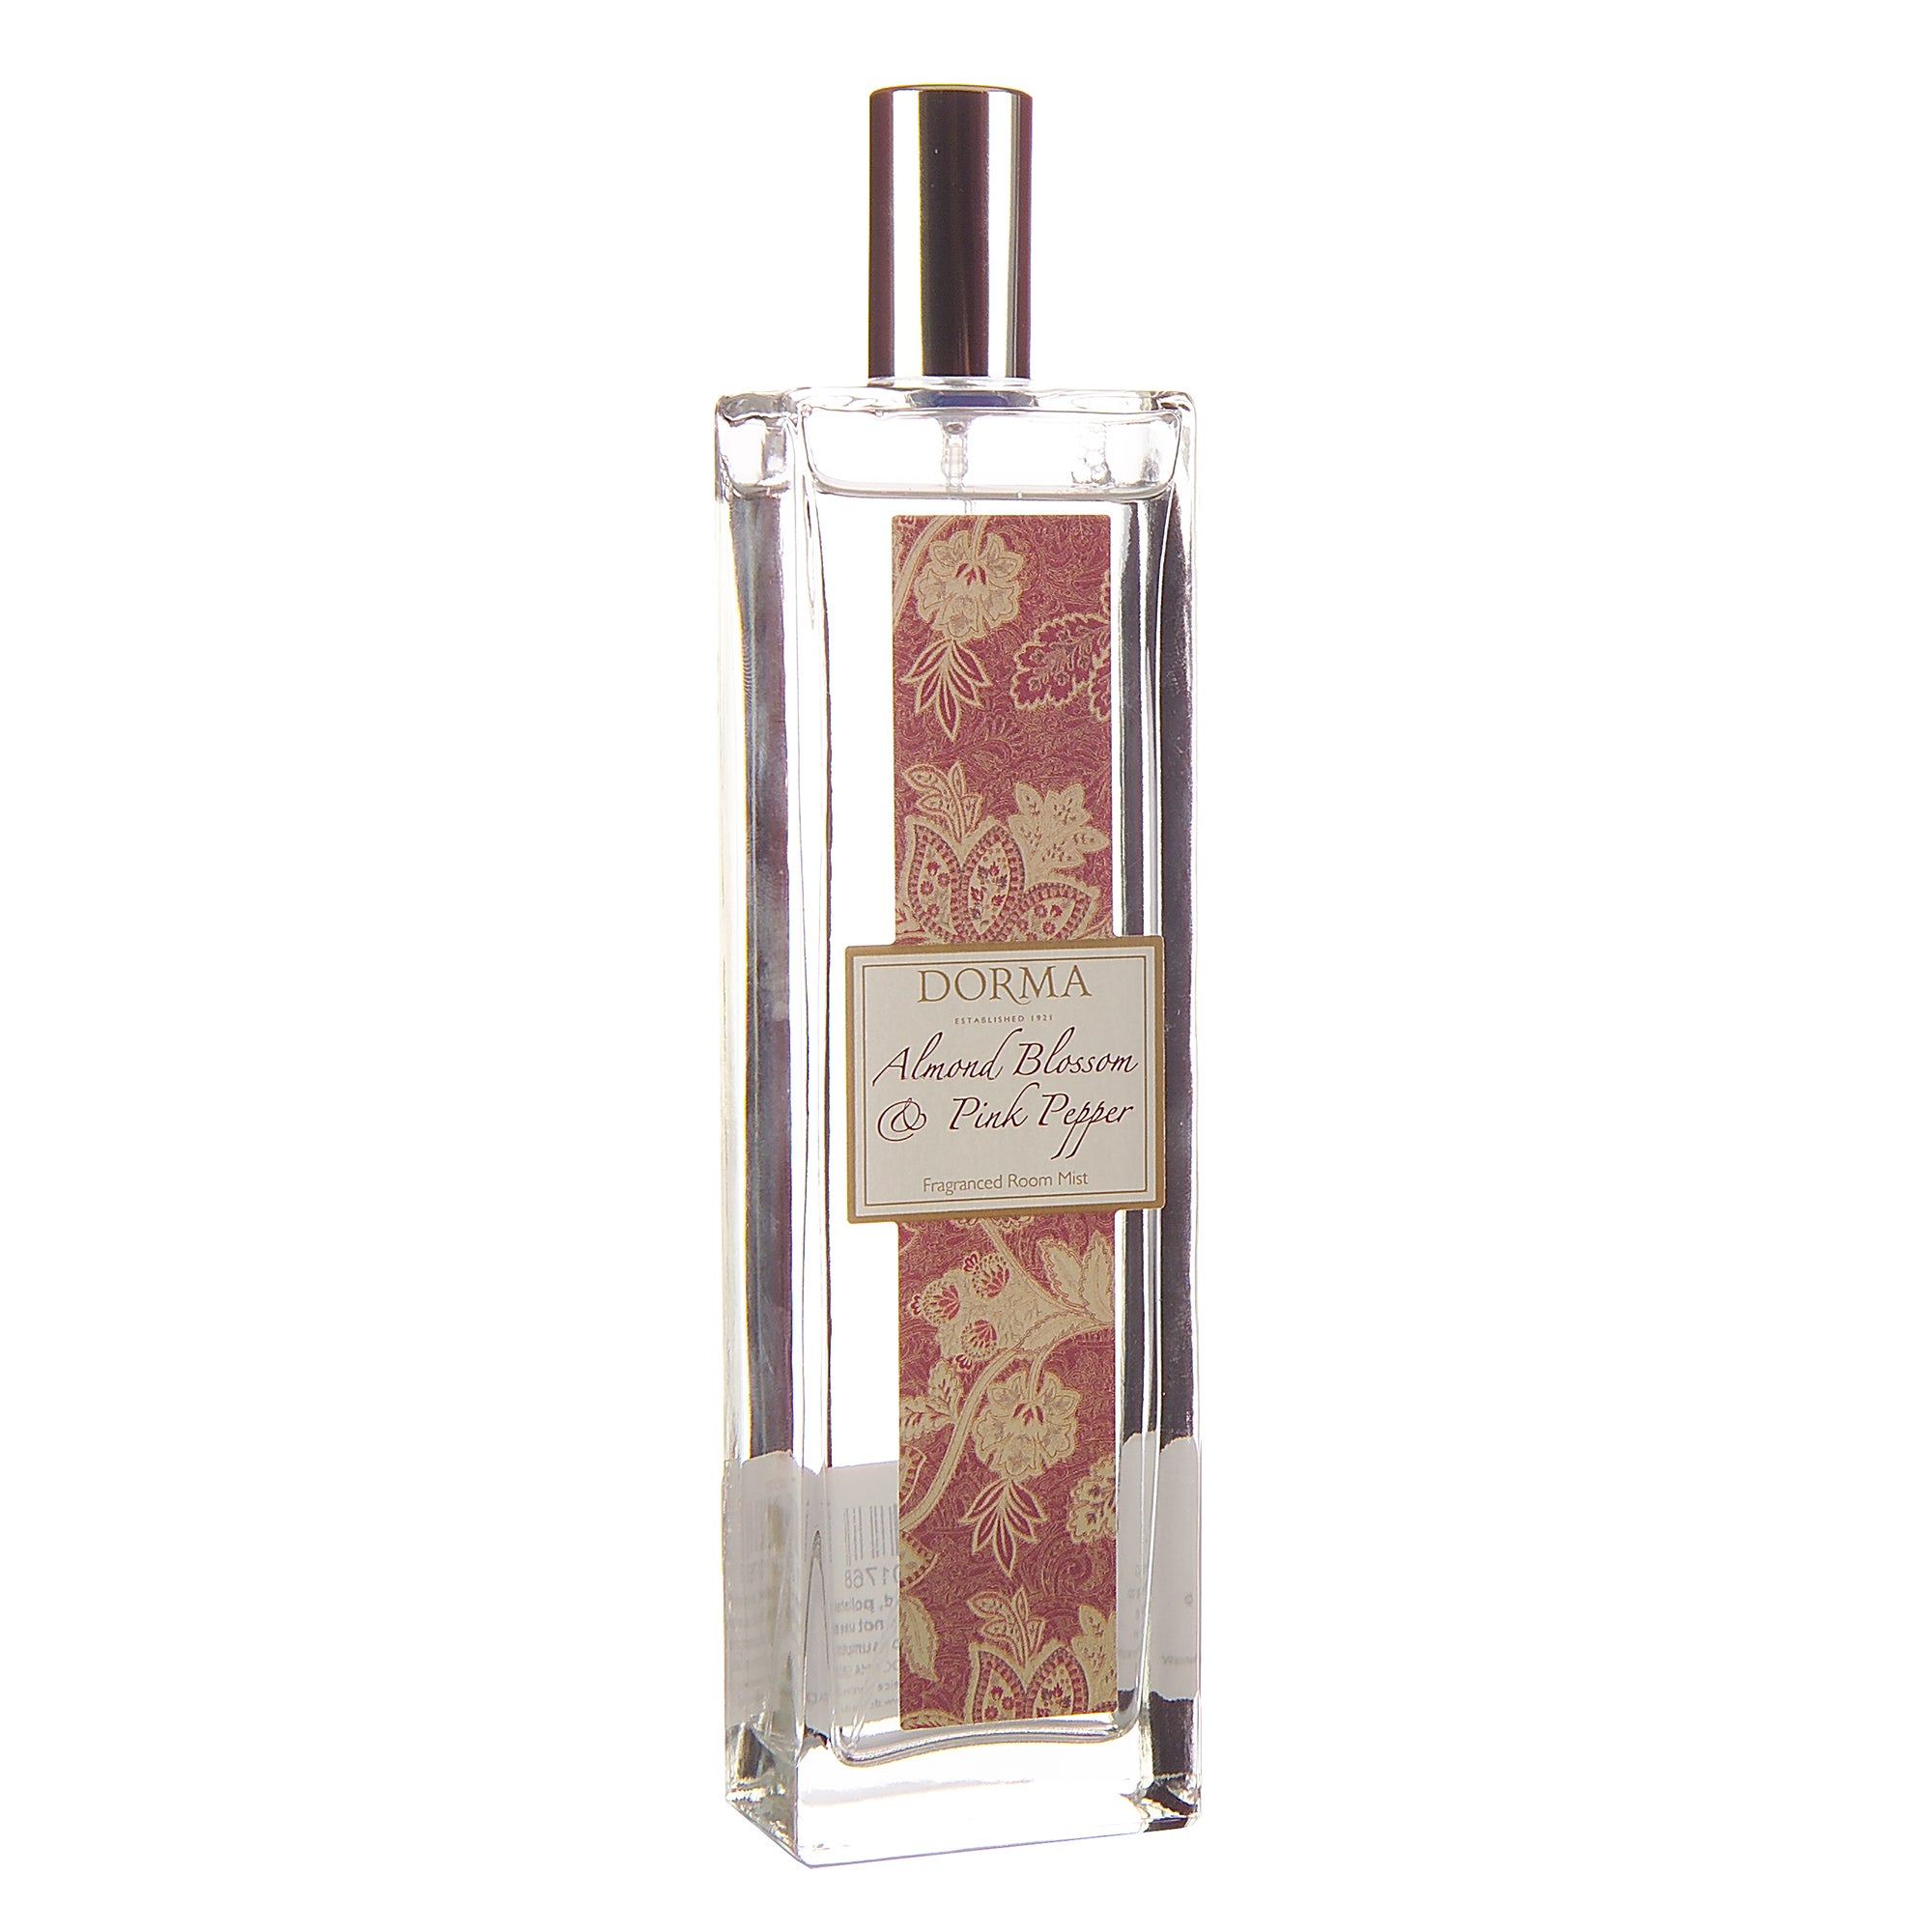 Dorma Almond Blossom and Pink Pepper Room Mist